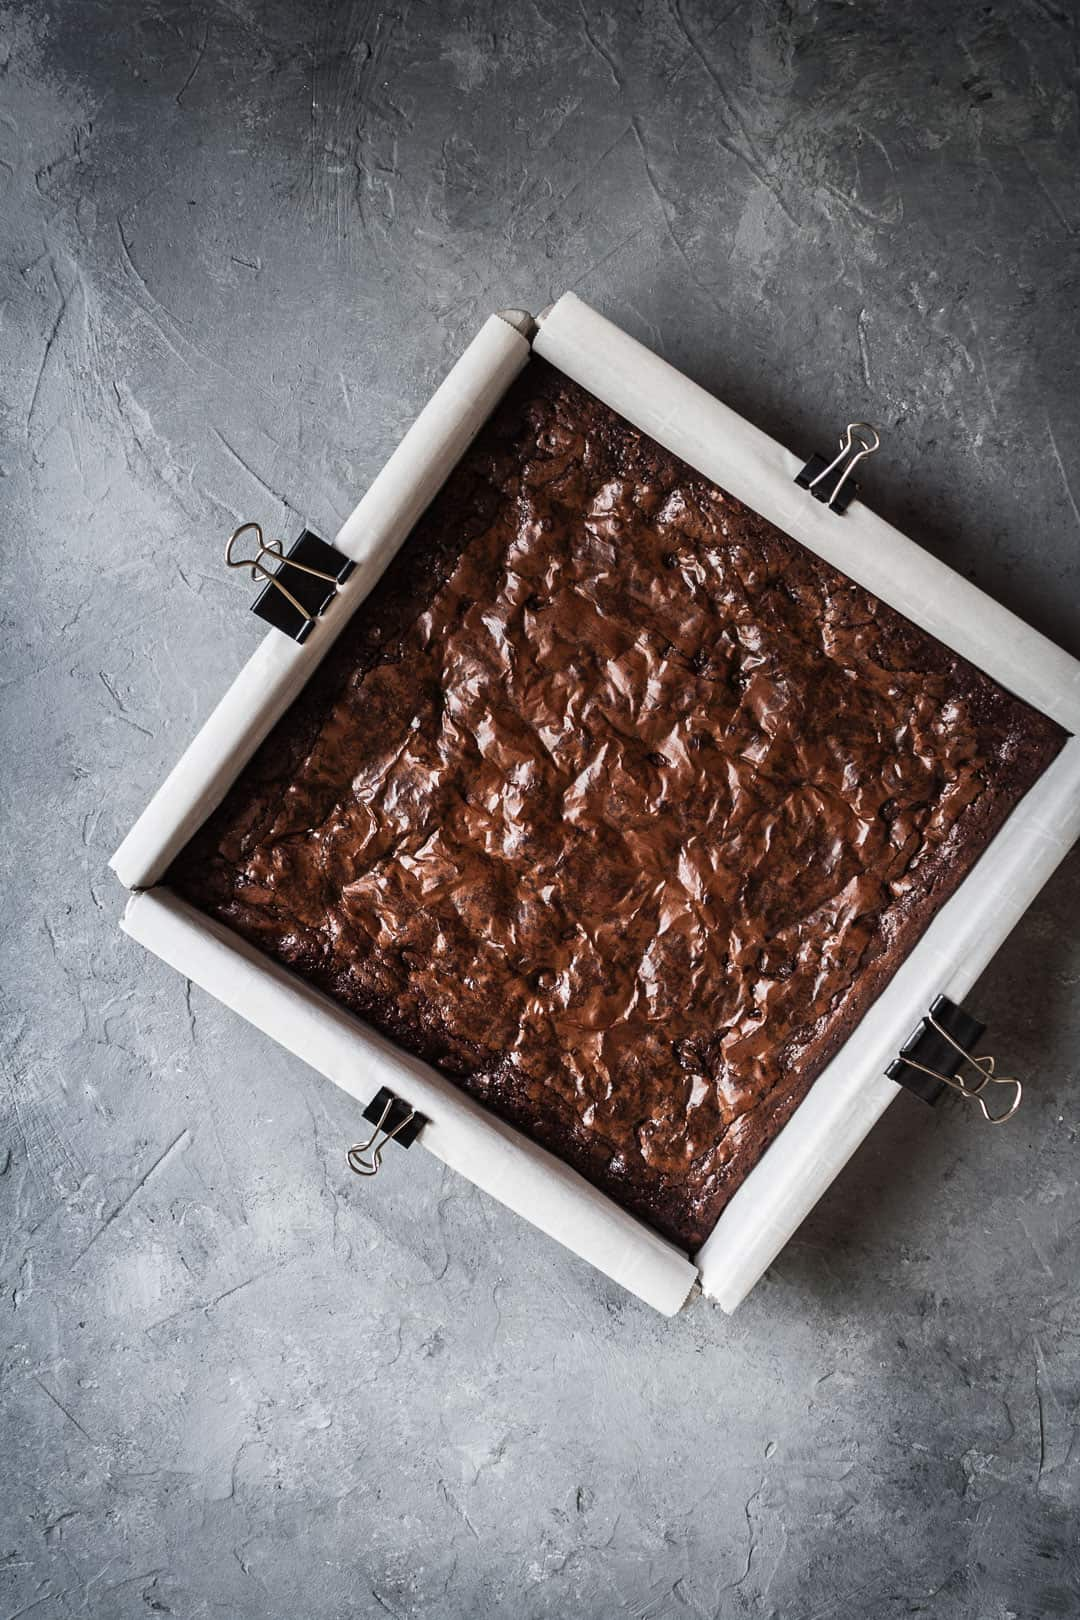 Overhead view of a square pan of brownies with port soaked cherries on a grey background